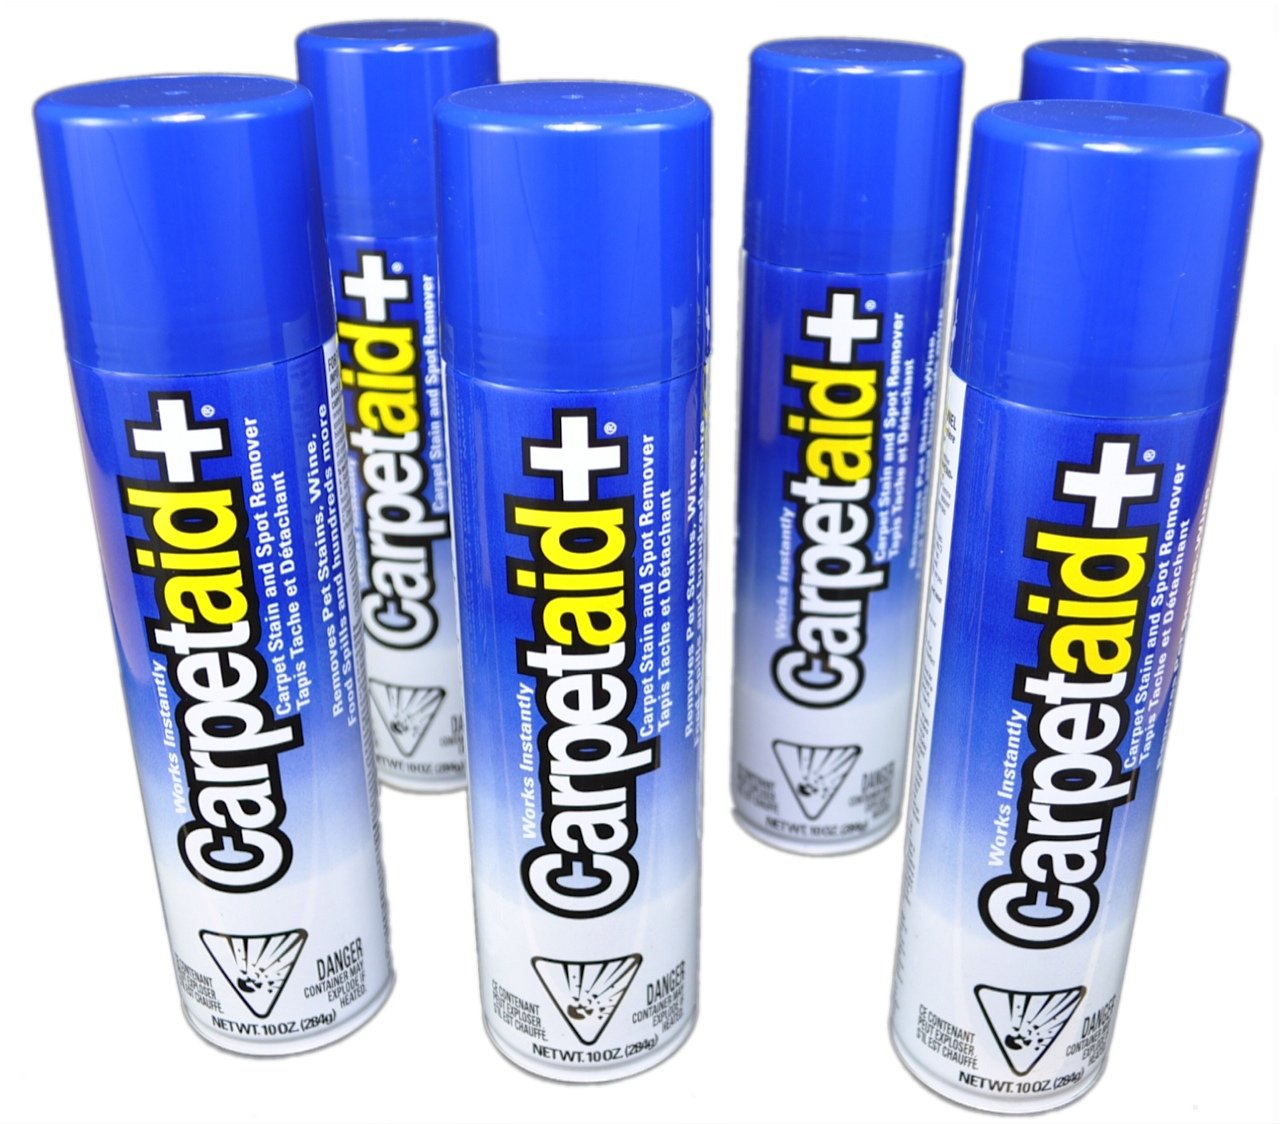 10 Oz. CarpetAid+ Carpet Stain Remover & Spot Cleaner (Pack of 6 Cans): Easily and Effectively Remove Food, Drink, Dirt, Mud, Pet, and Other Stubborn Stains Instantly; No Rubbing or Scrubbing by Apex